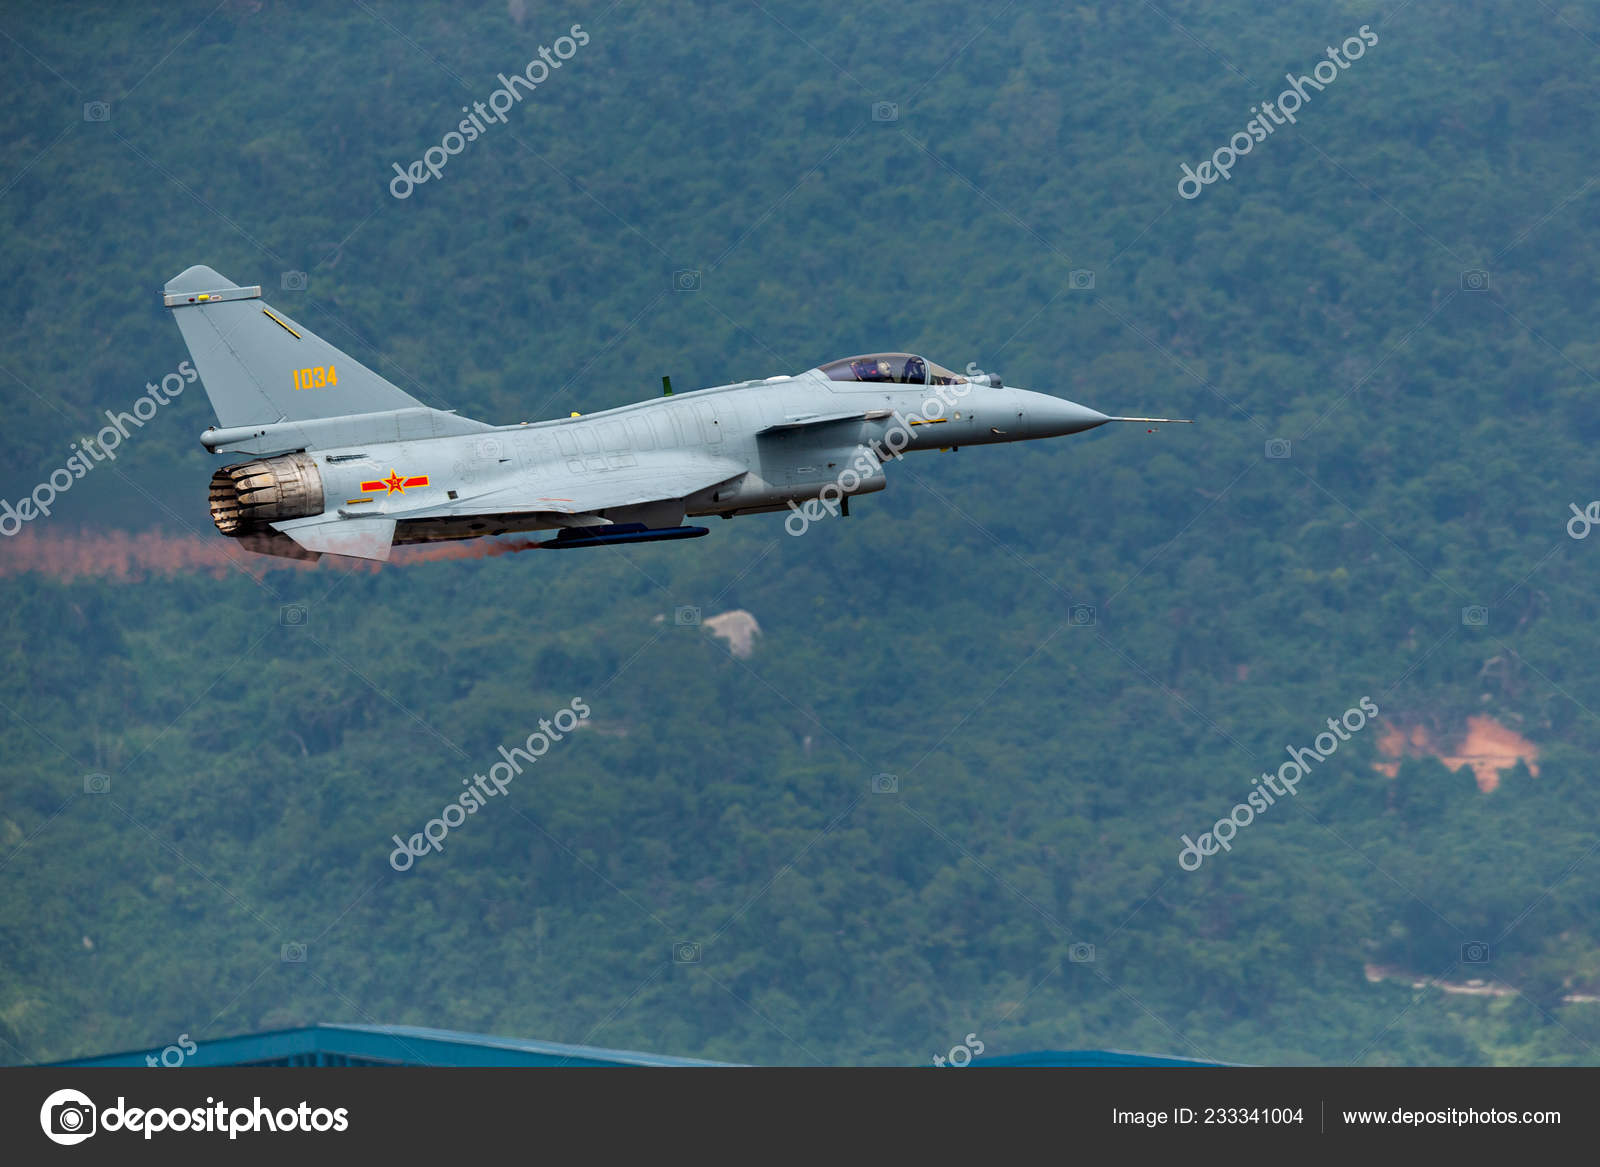 10B Fighter Jet Chinese People Liberation Army Pla Air Force – Stock